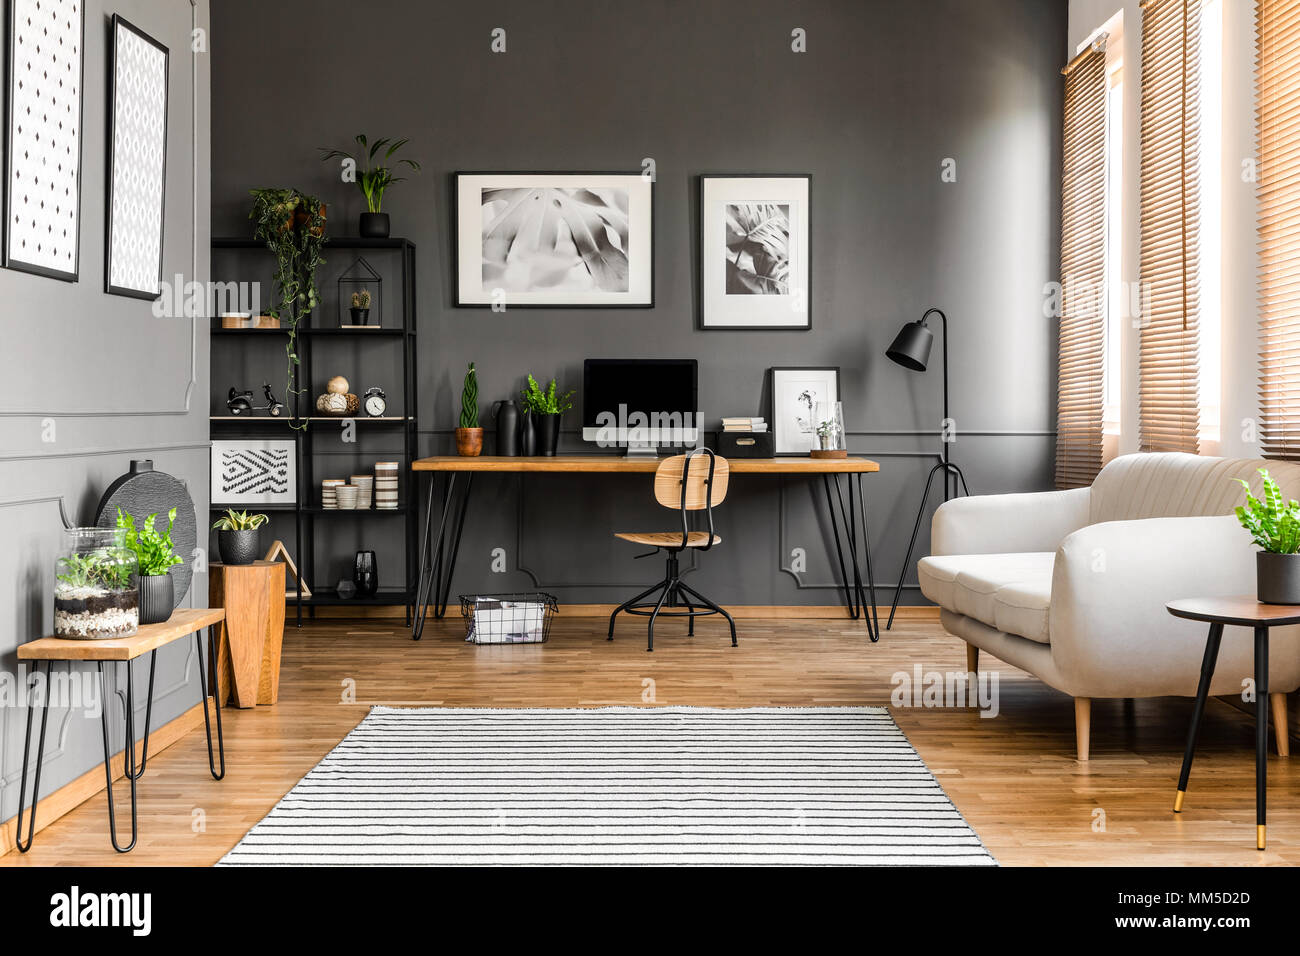 Beige couch near wooden desk with computer monitor in grey freelancer's room interior with posters and plants - Stock Image